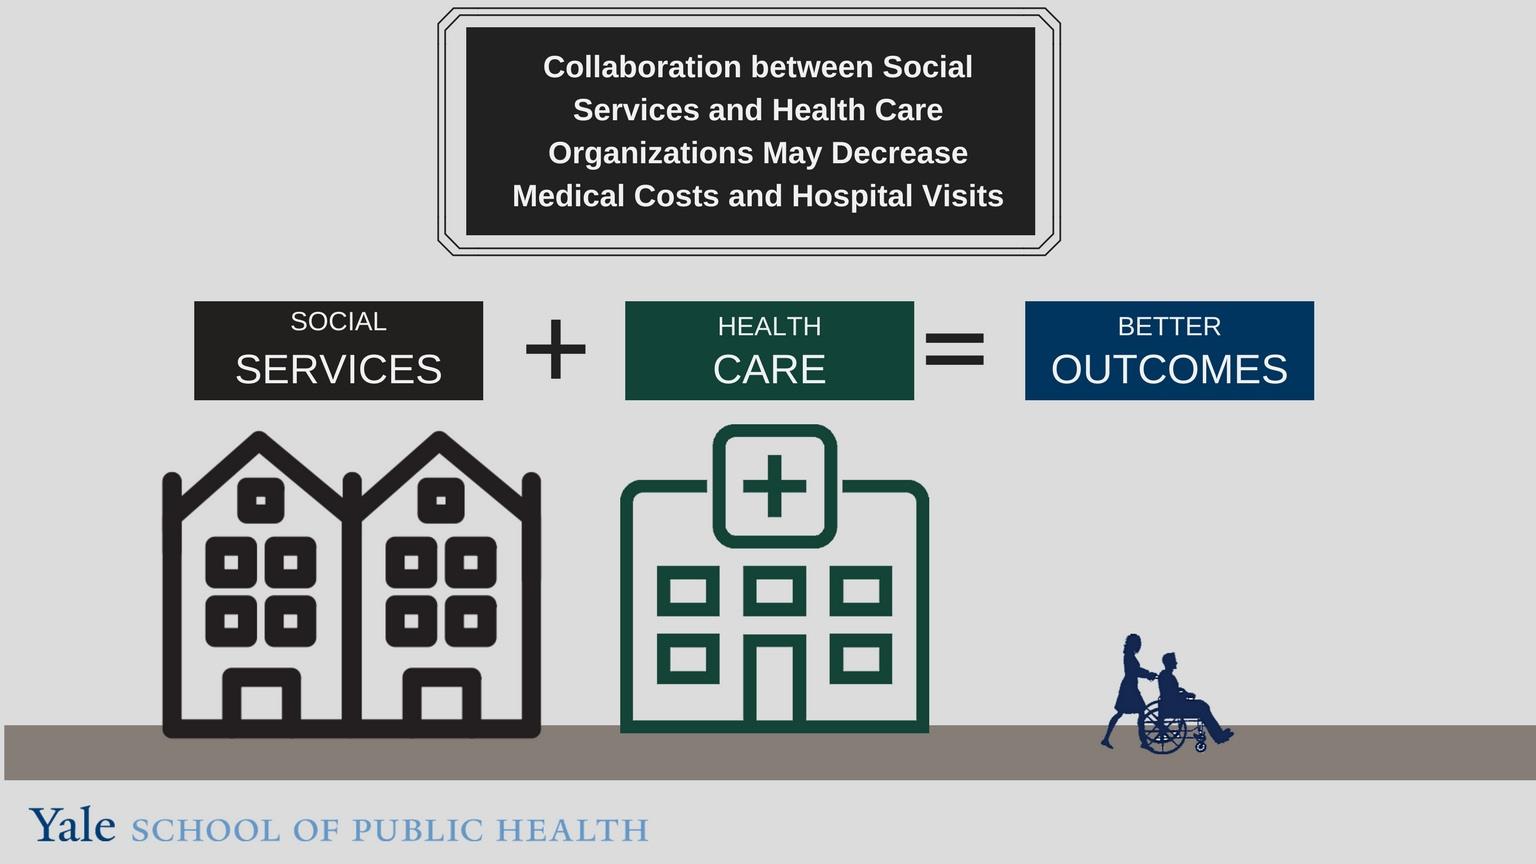 Integrating social services with health care may improve health outcomes